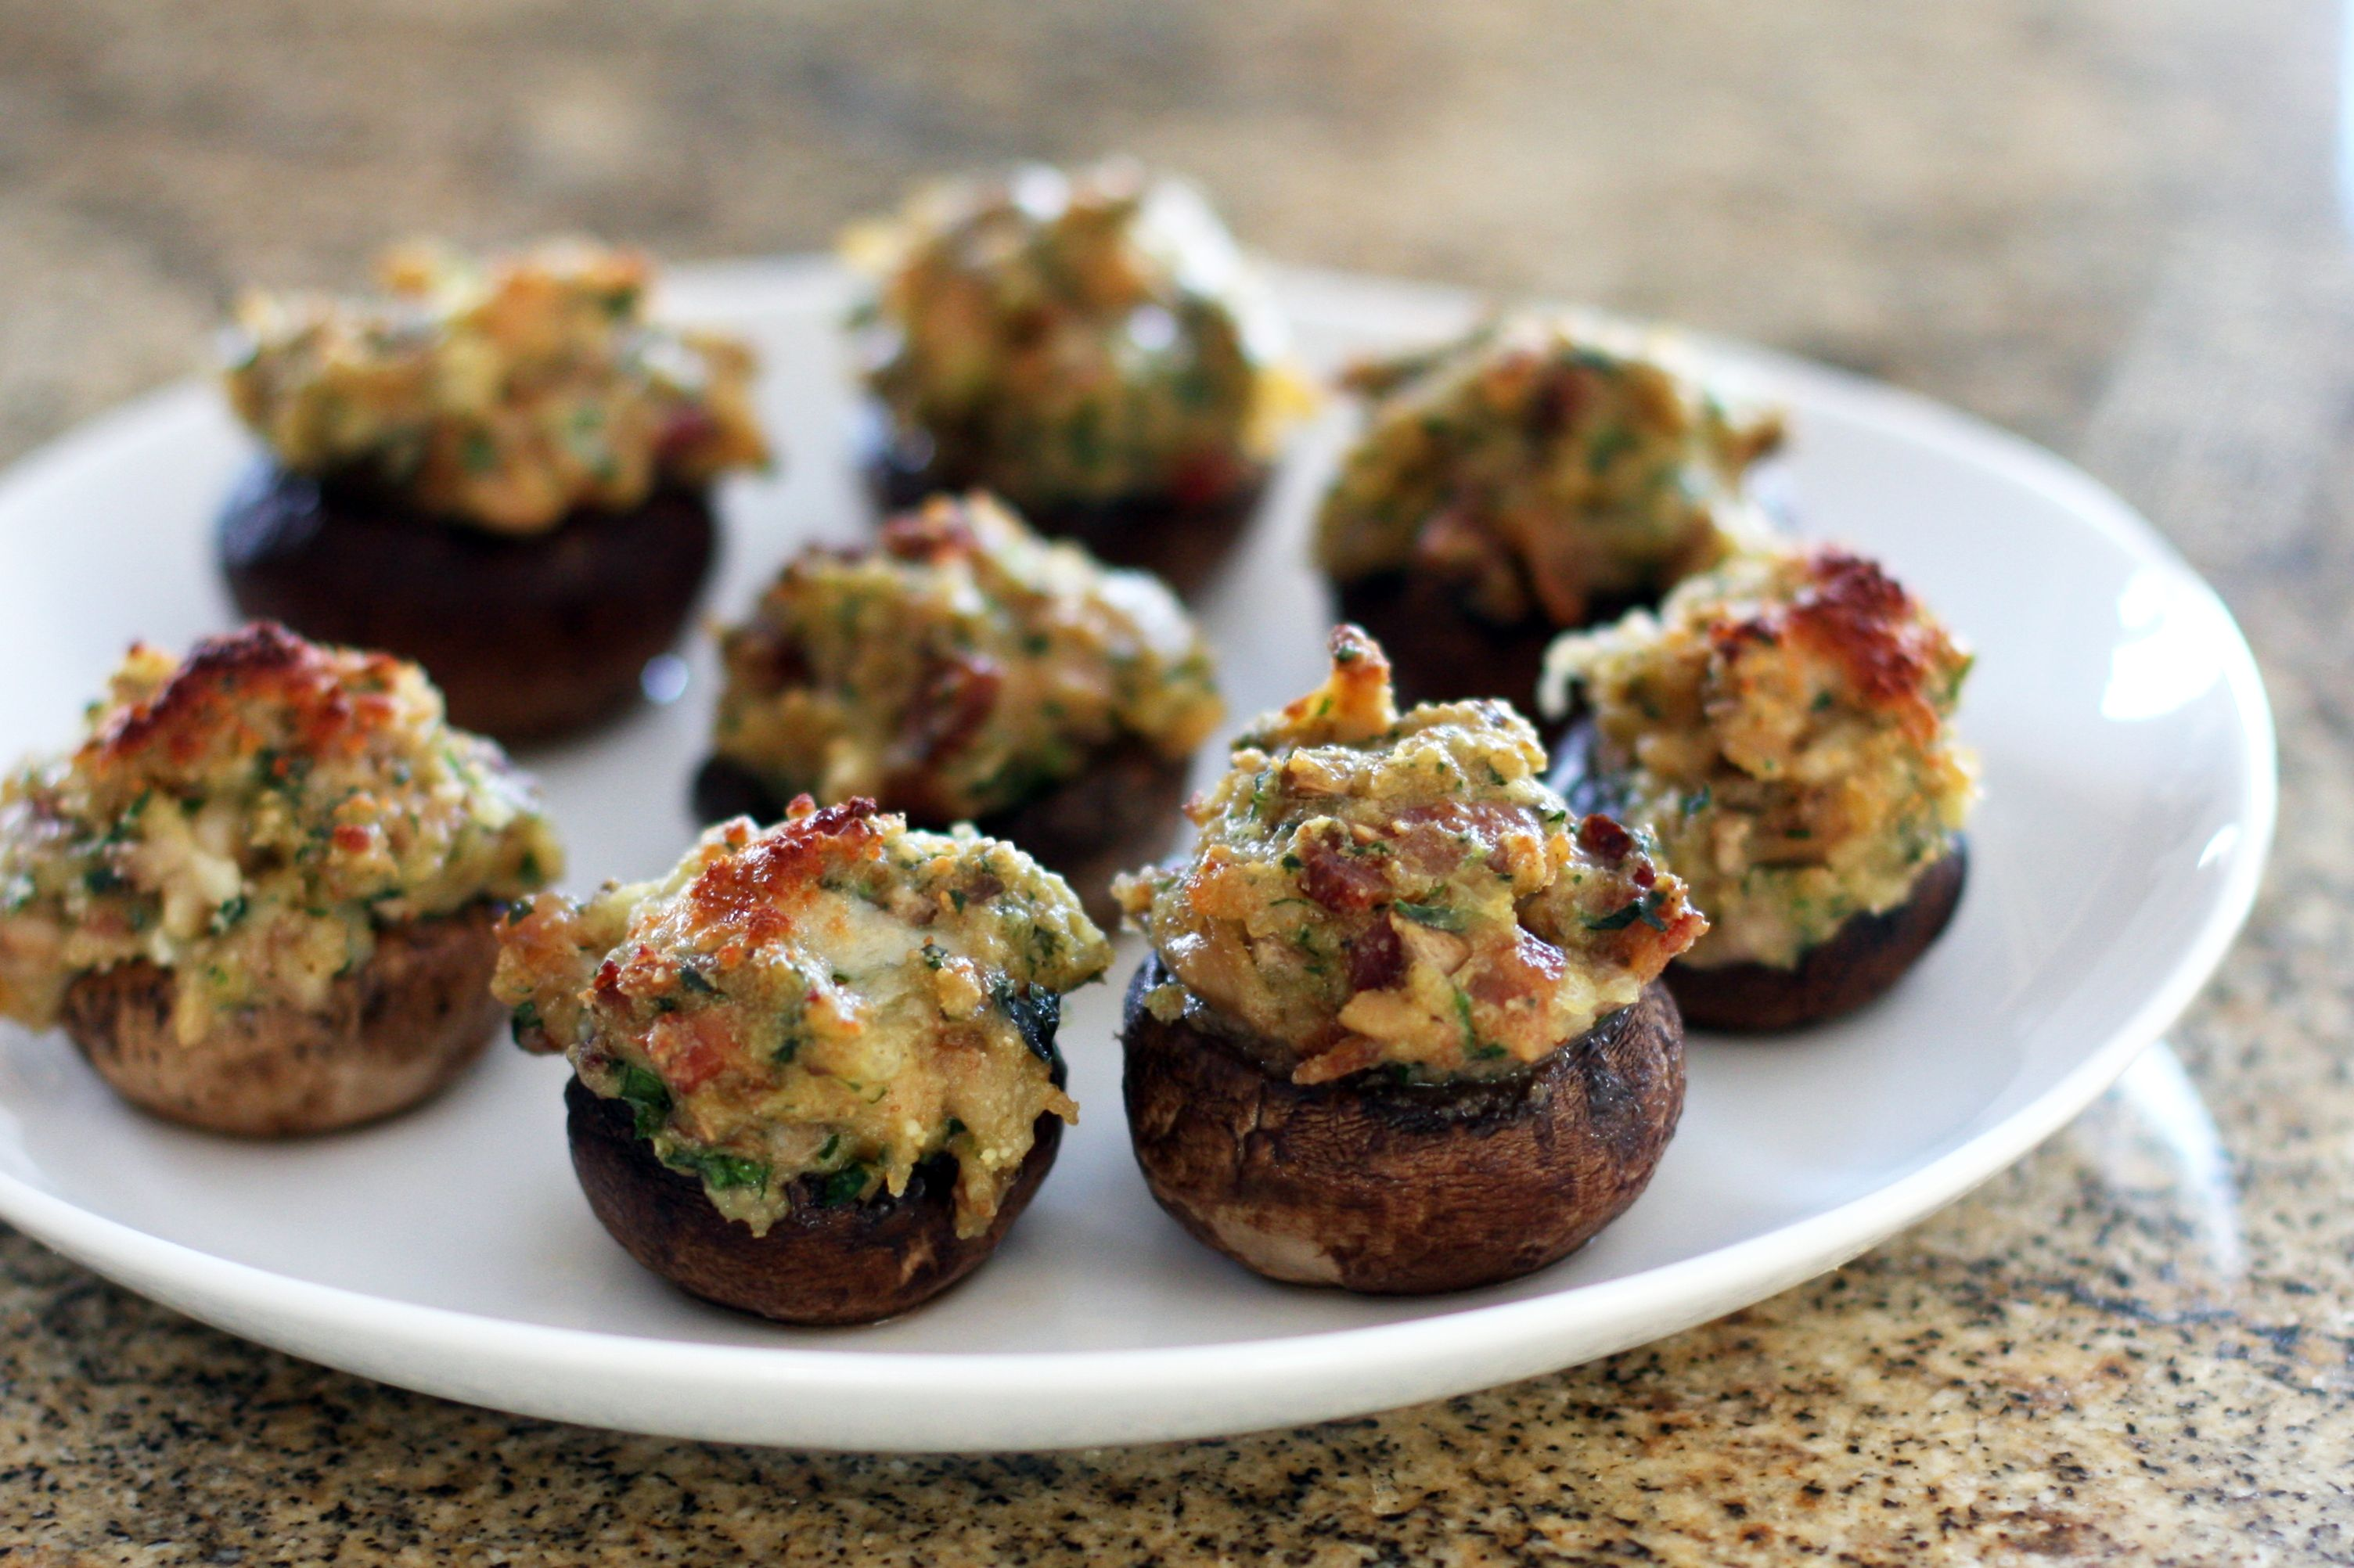 Meat Stuffed Mushrooms With Italian Sausage